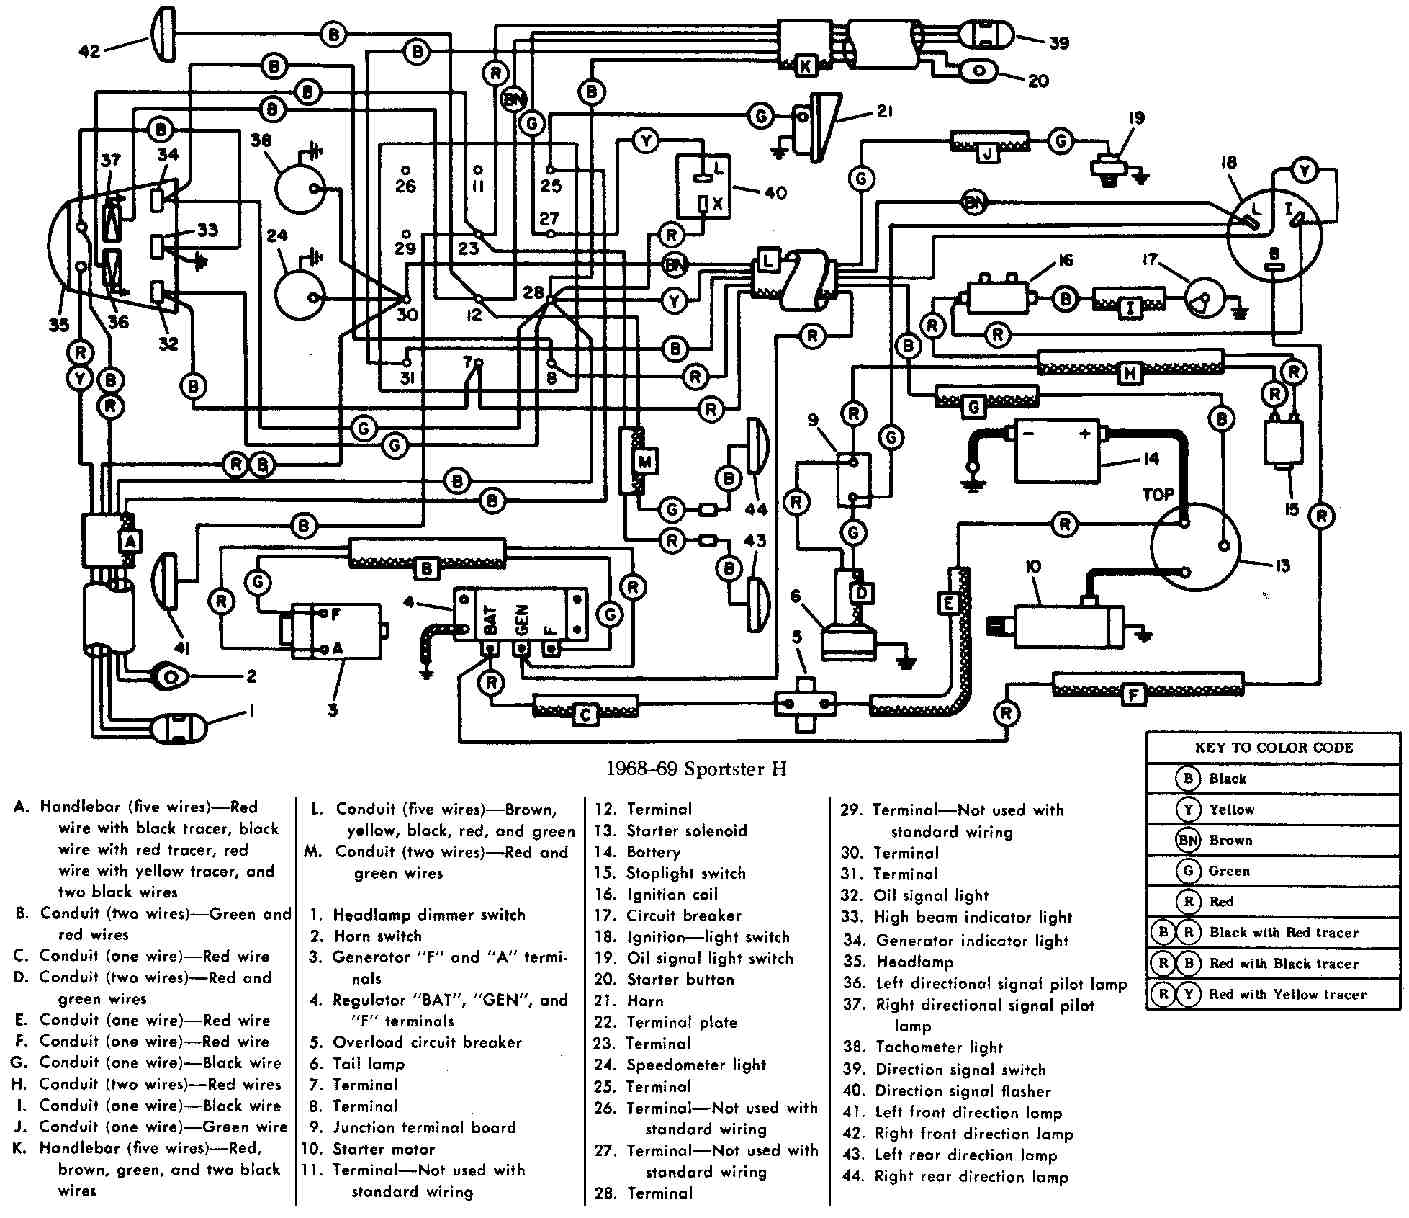 2003 softail wiring diagram sony cdx gt600ui harley davidson auto electrical coil